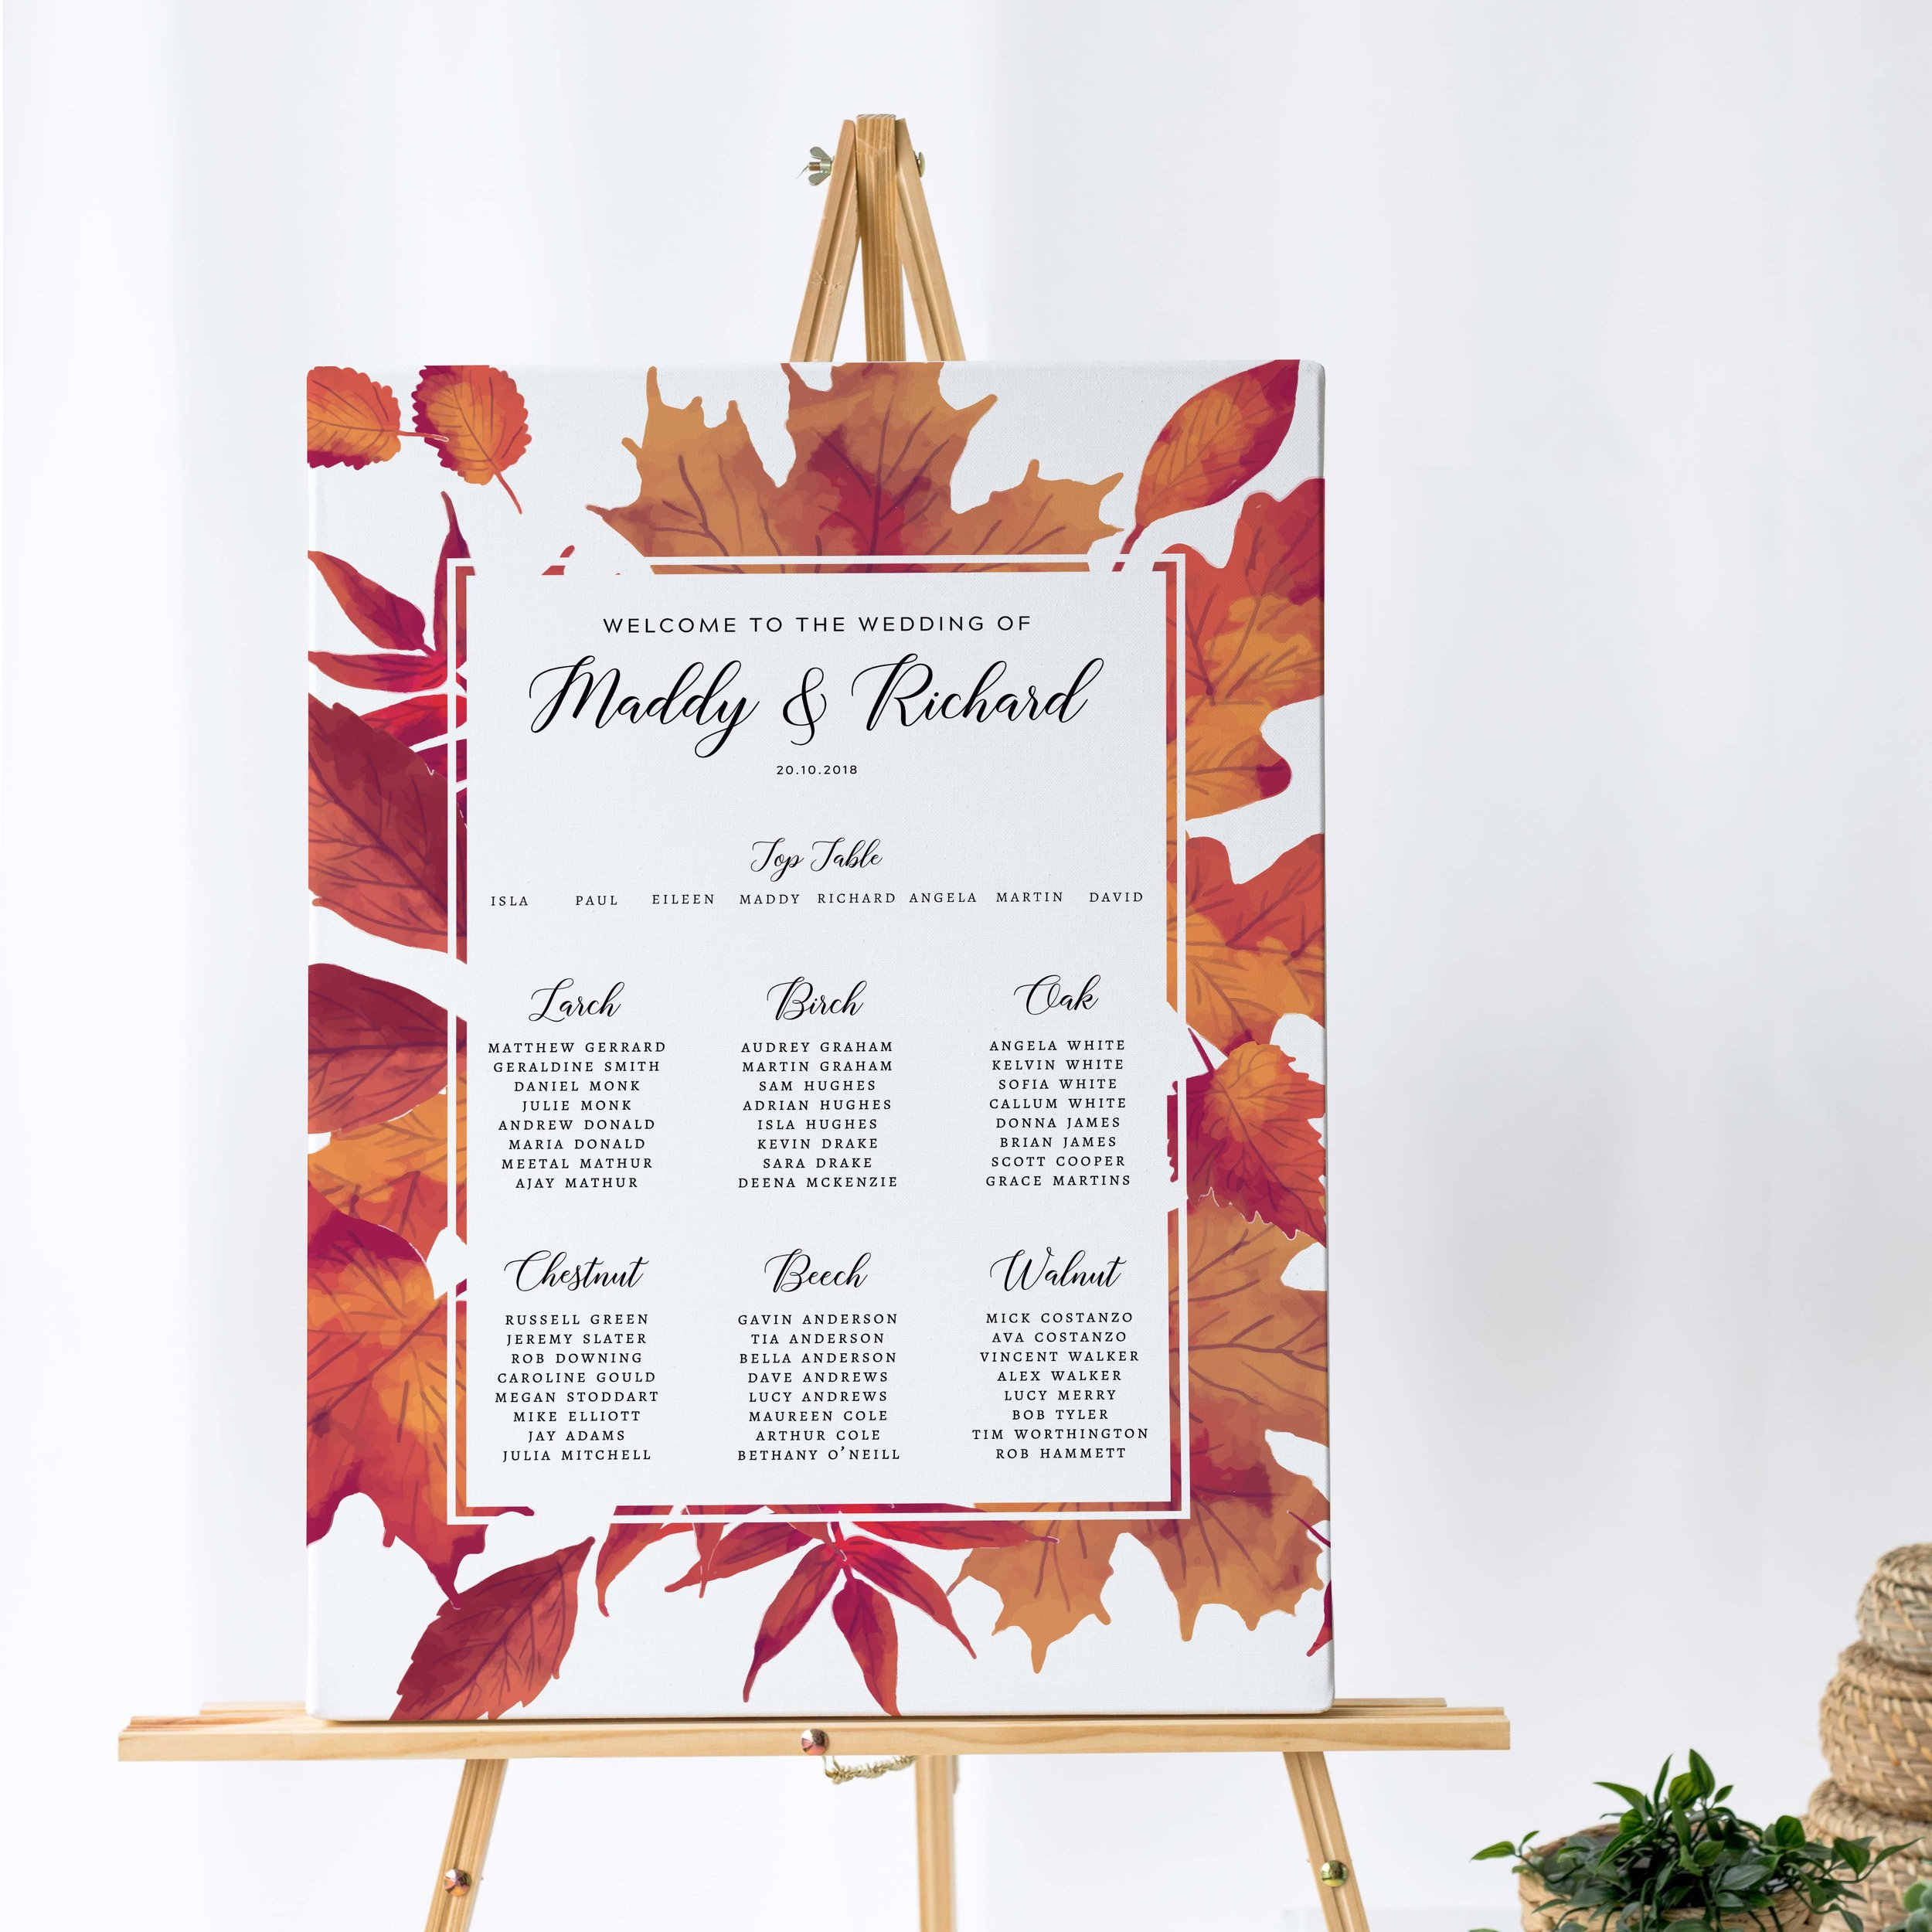 Burnt Oak - This autumnal table plan comes from our vibrant Burnt Oak collection, featuring red and copper autumn leaves, perfect for the autumn wedding day.Our table plans are printed on one of two base options, including waterproof foamex, and can be combined with a matching welcome sign and / or order of the day for a discounted rate.The layout is customisable and all orders include one-on-one design with a comprehensive proofing process to ensure accuracy.